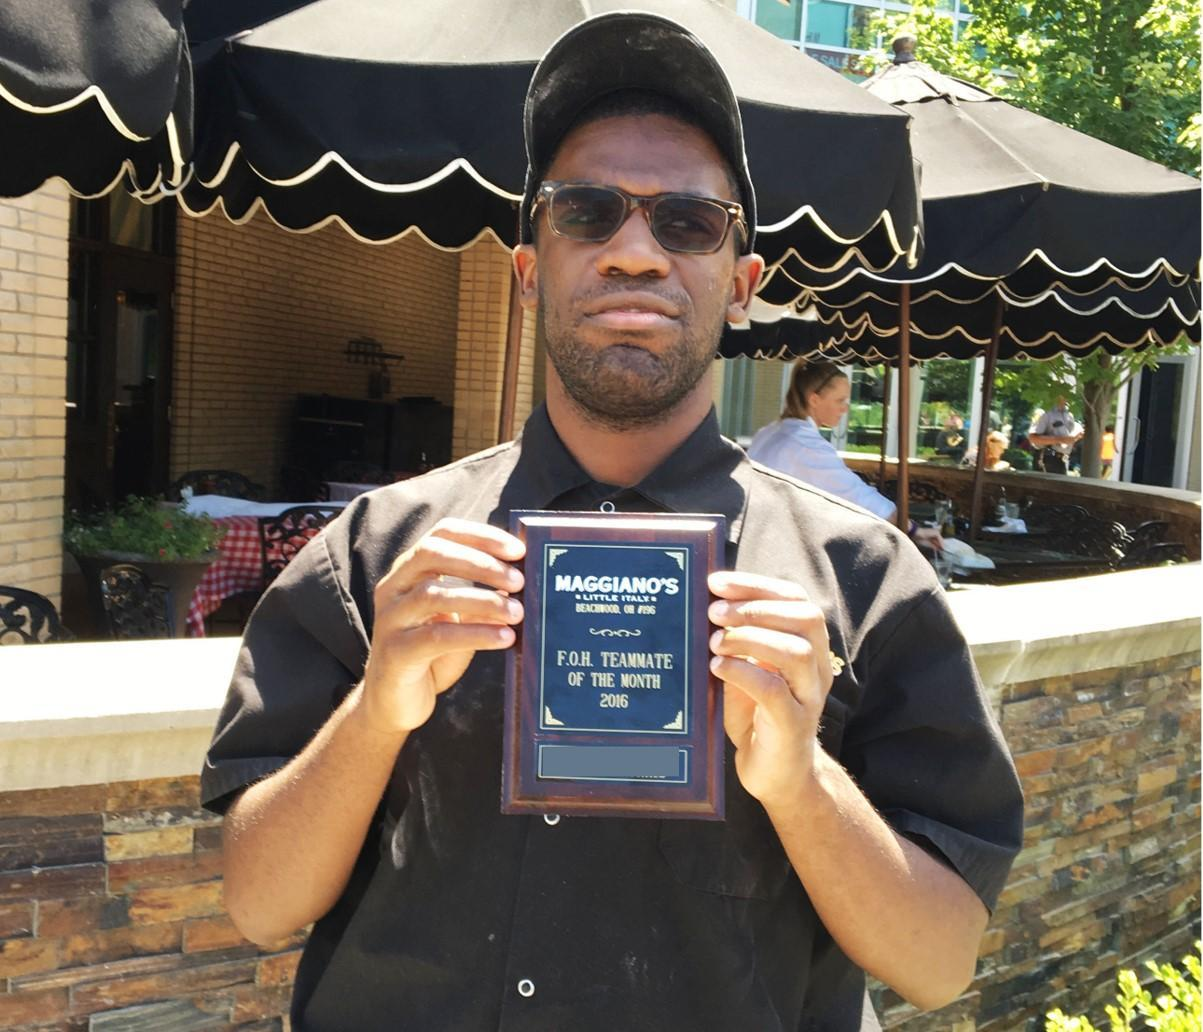 William was recently named employee of the month! A job can change a life